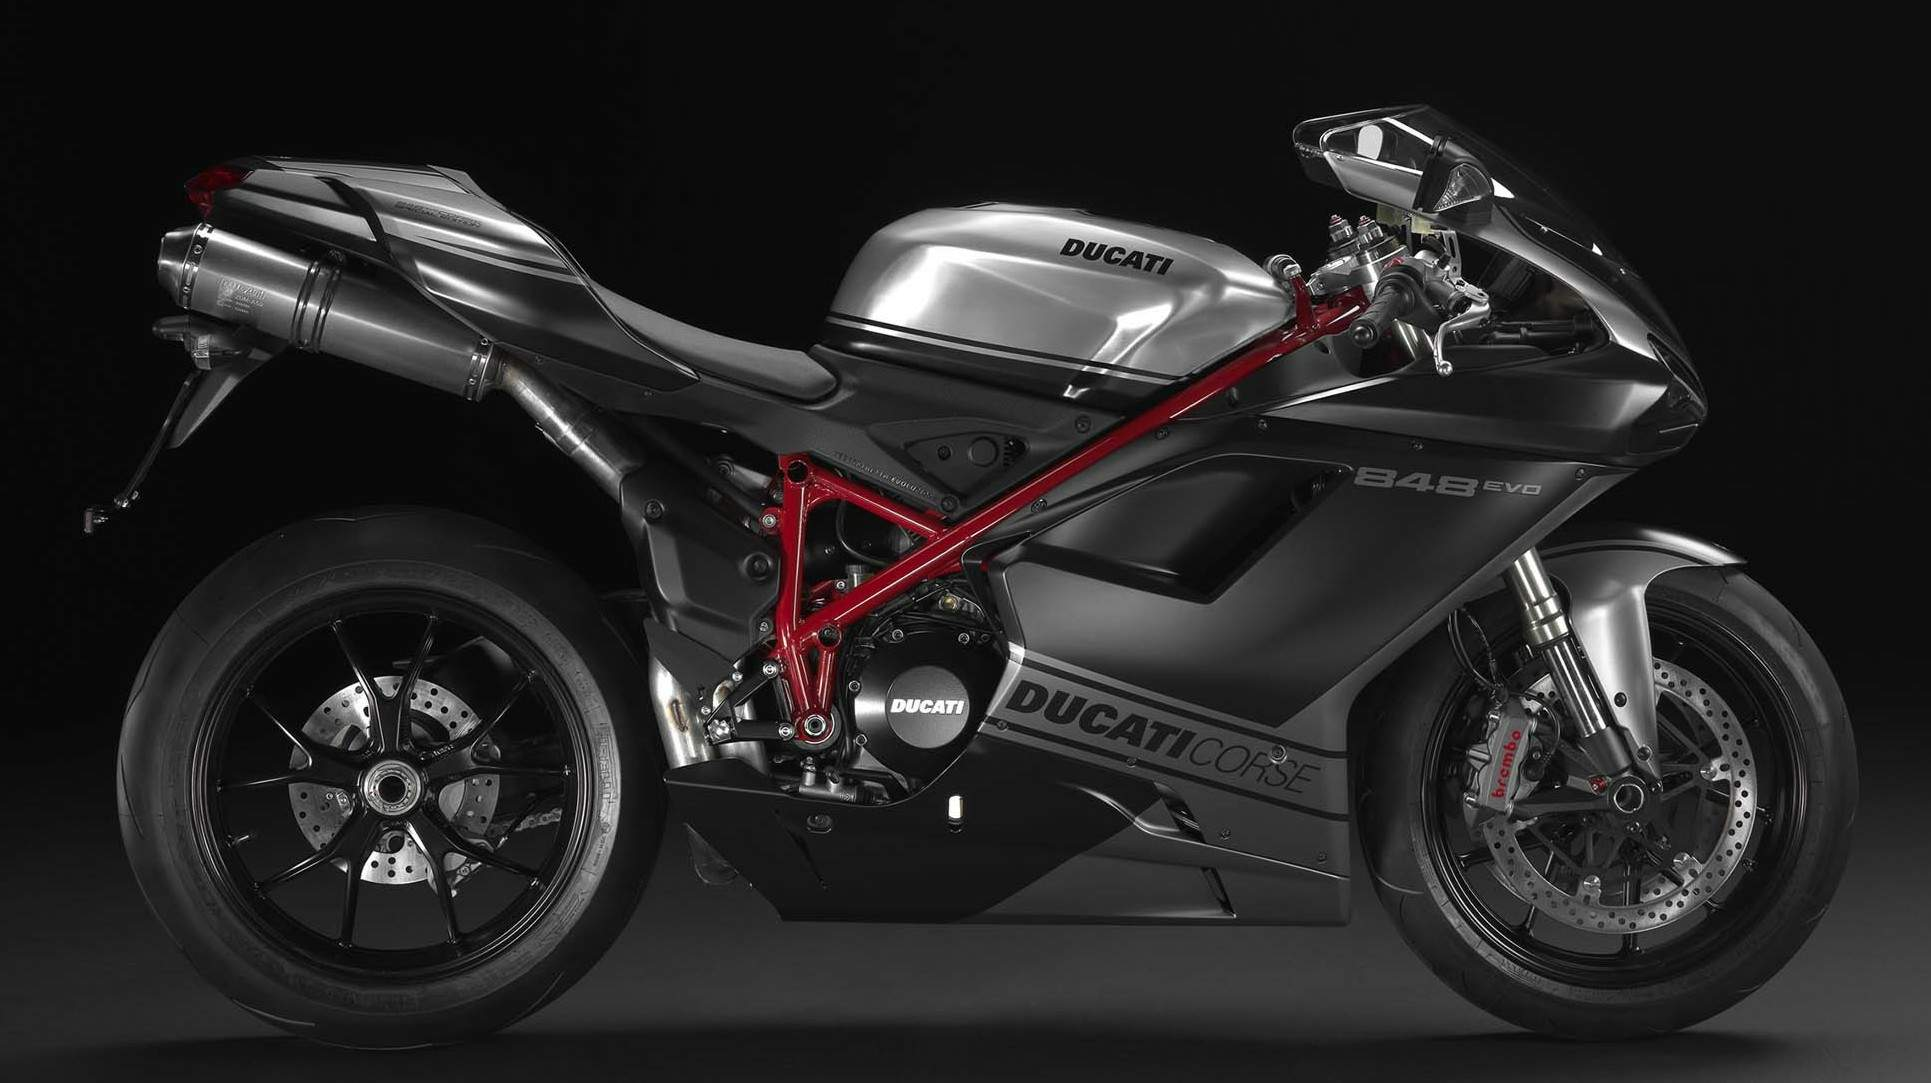 Enjoyable Ducati 848 Evo Corse Special Edition Pabps2019 Chair Design Images Pabps2019Com